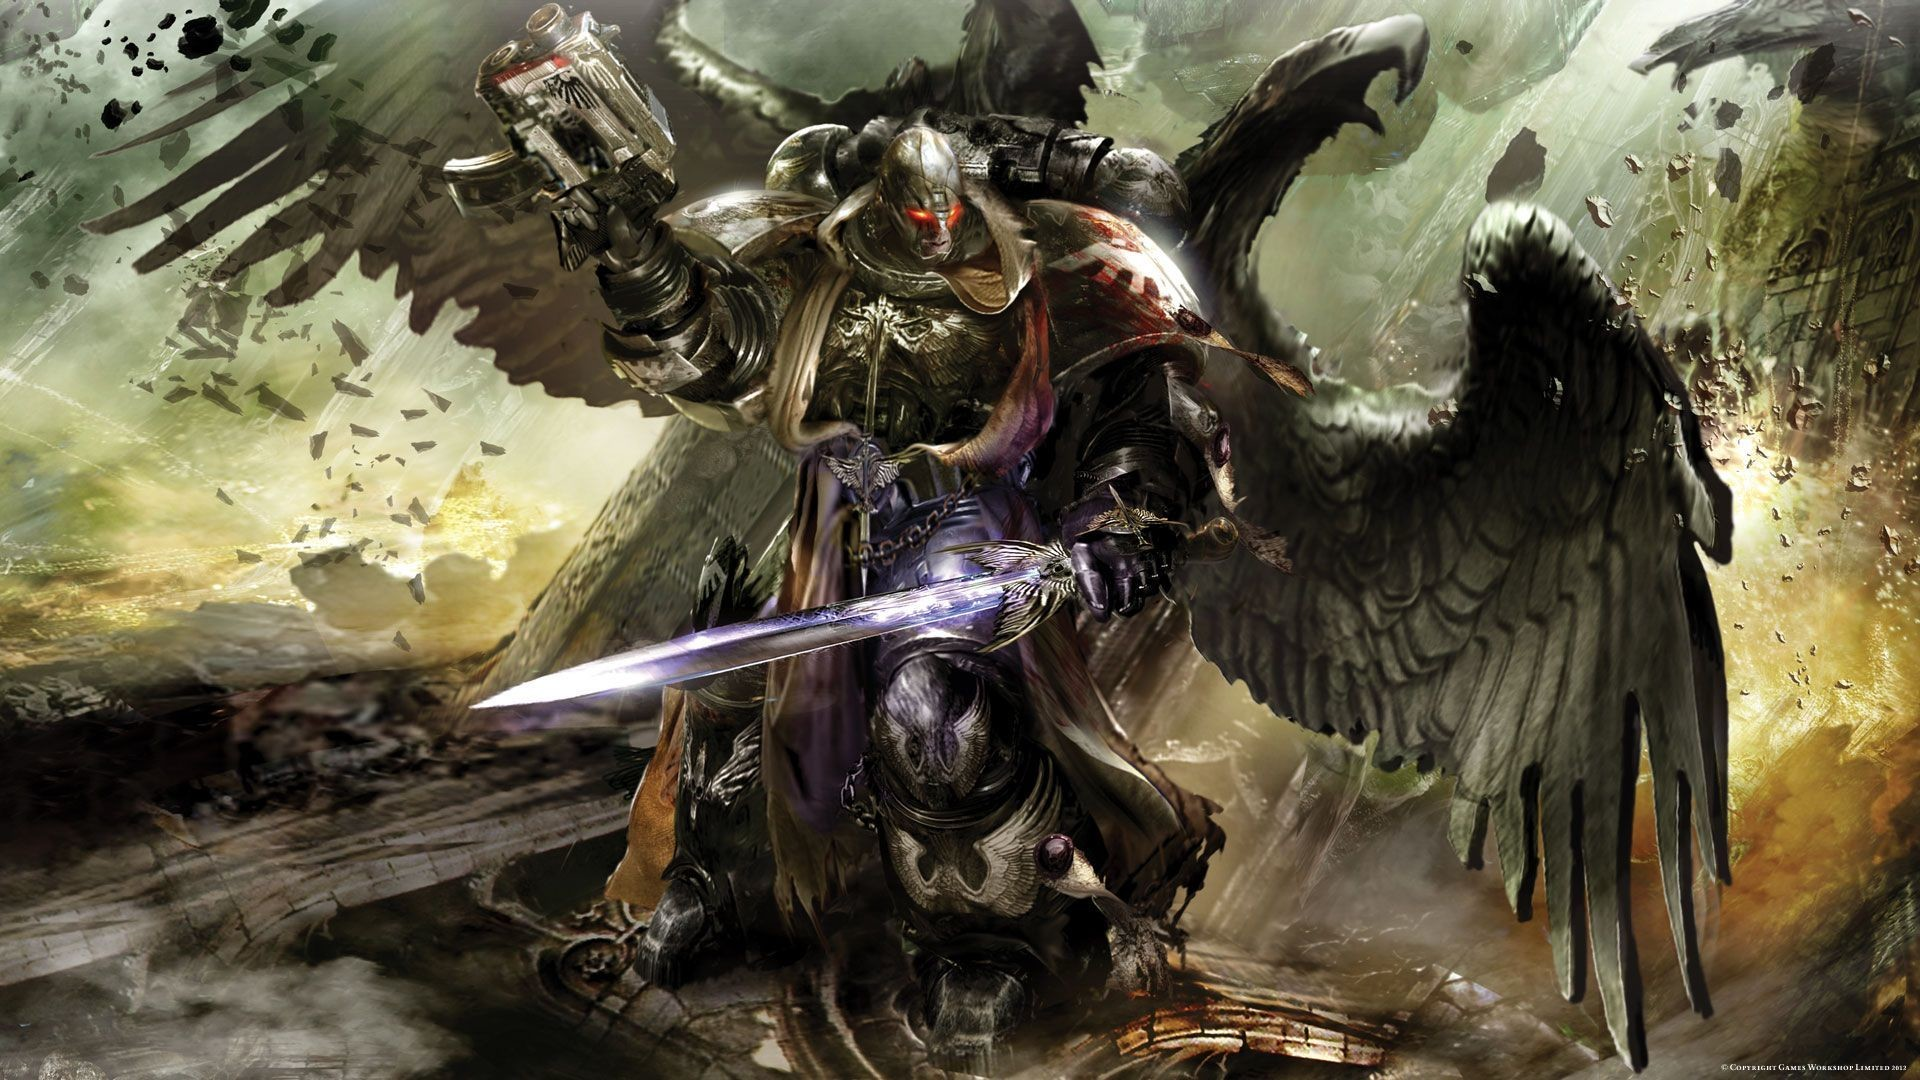 1920x1080 Amazing Warhammer 40k Wallpapers, Warhammer 40k High Definition Pictures -  HX3618658